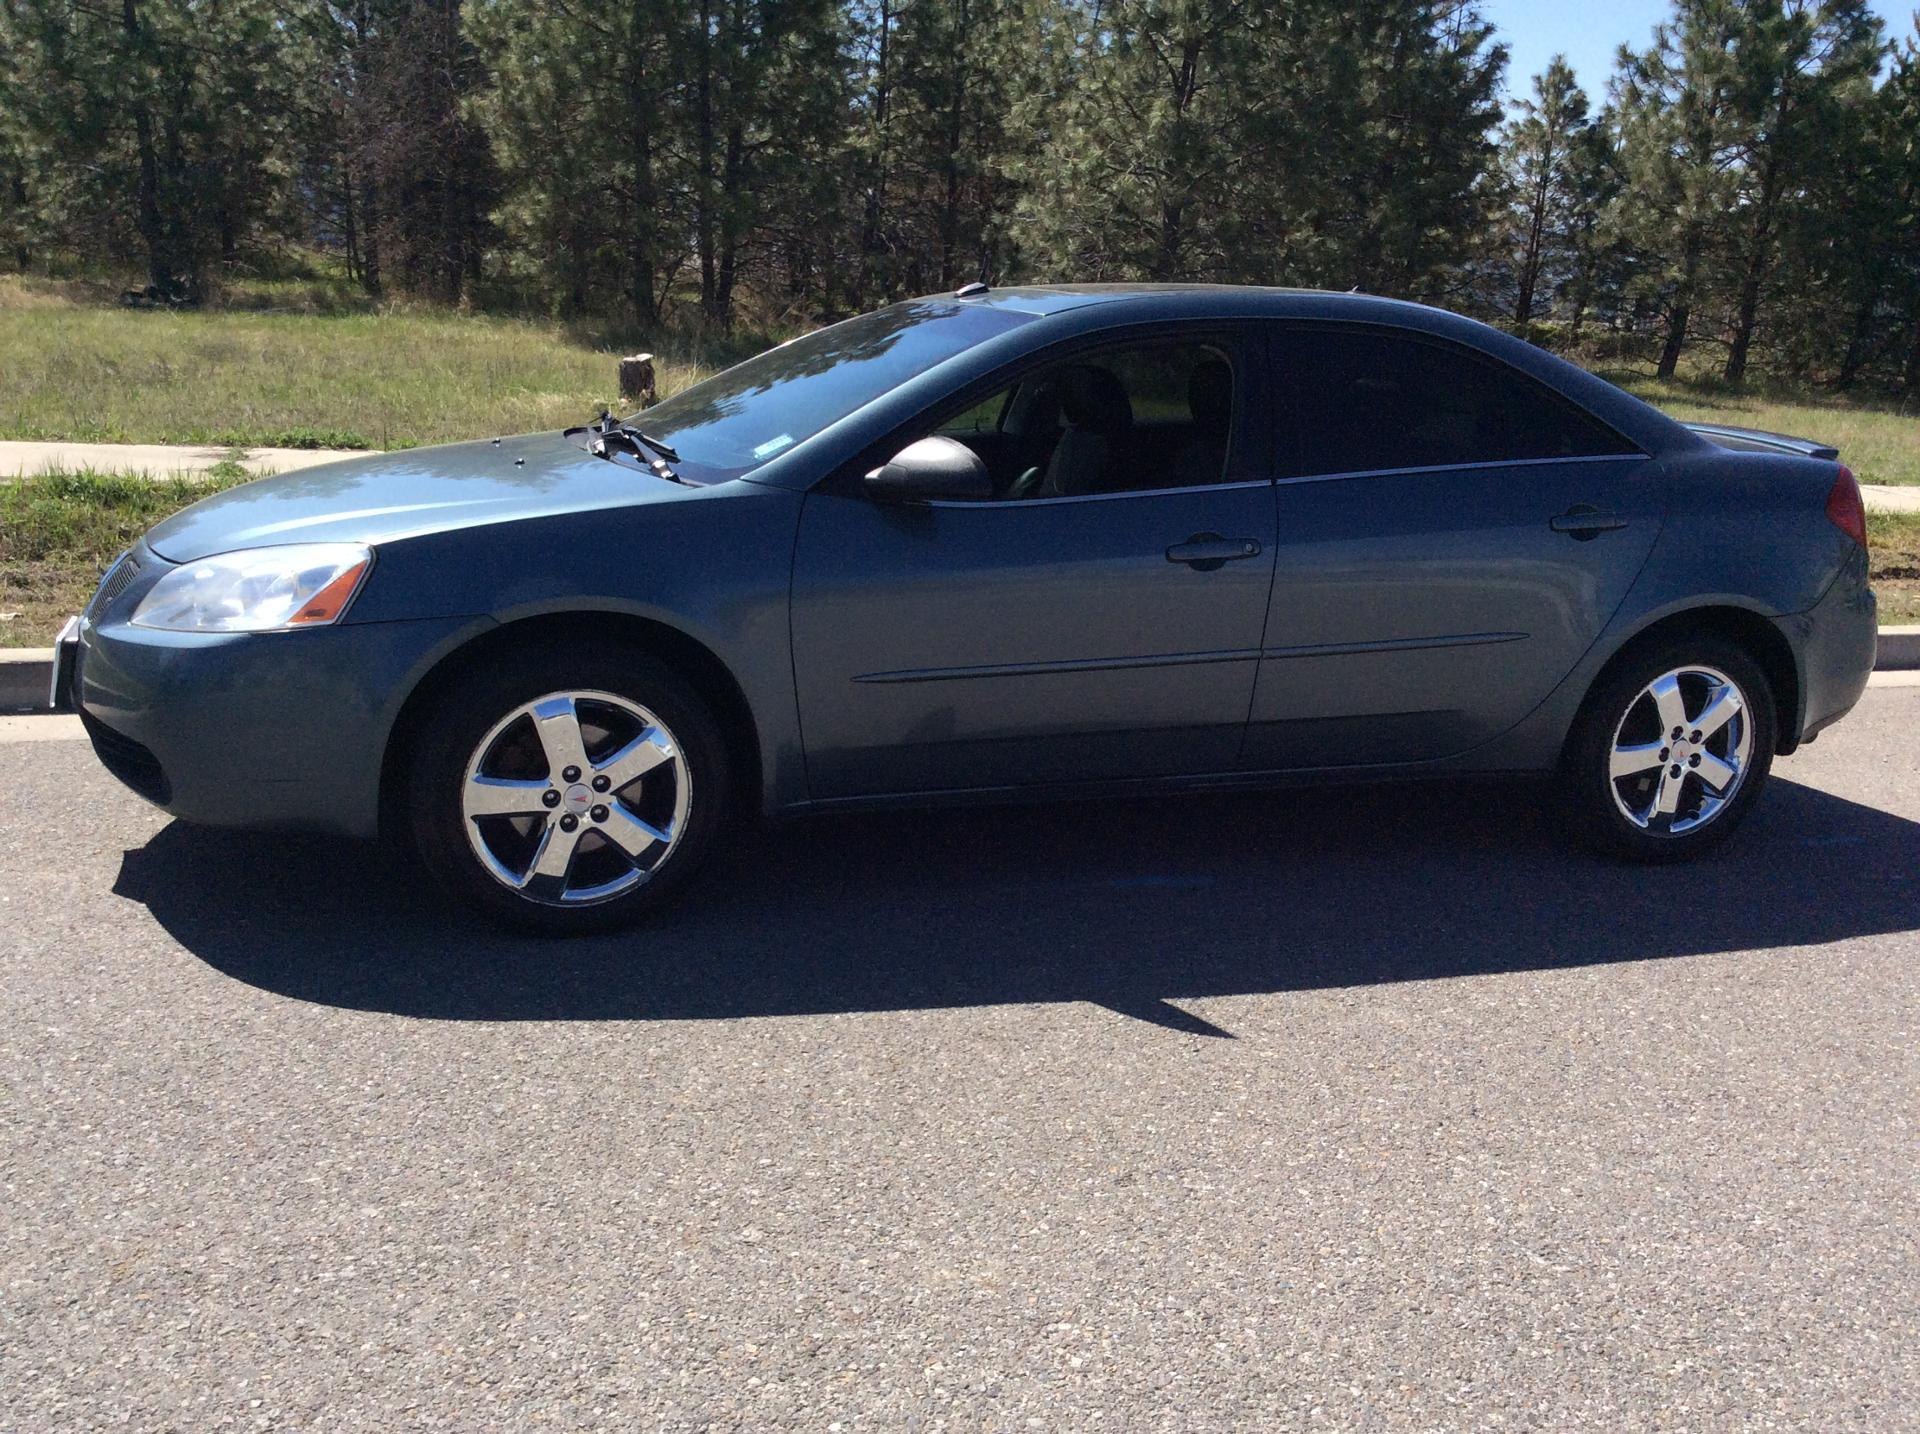 2005 pontiac g6 vehicle photo in coeur d alene id